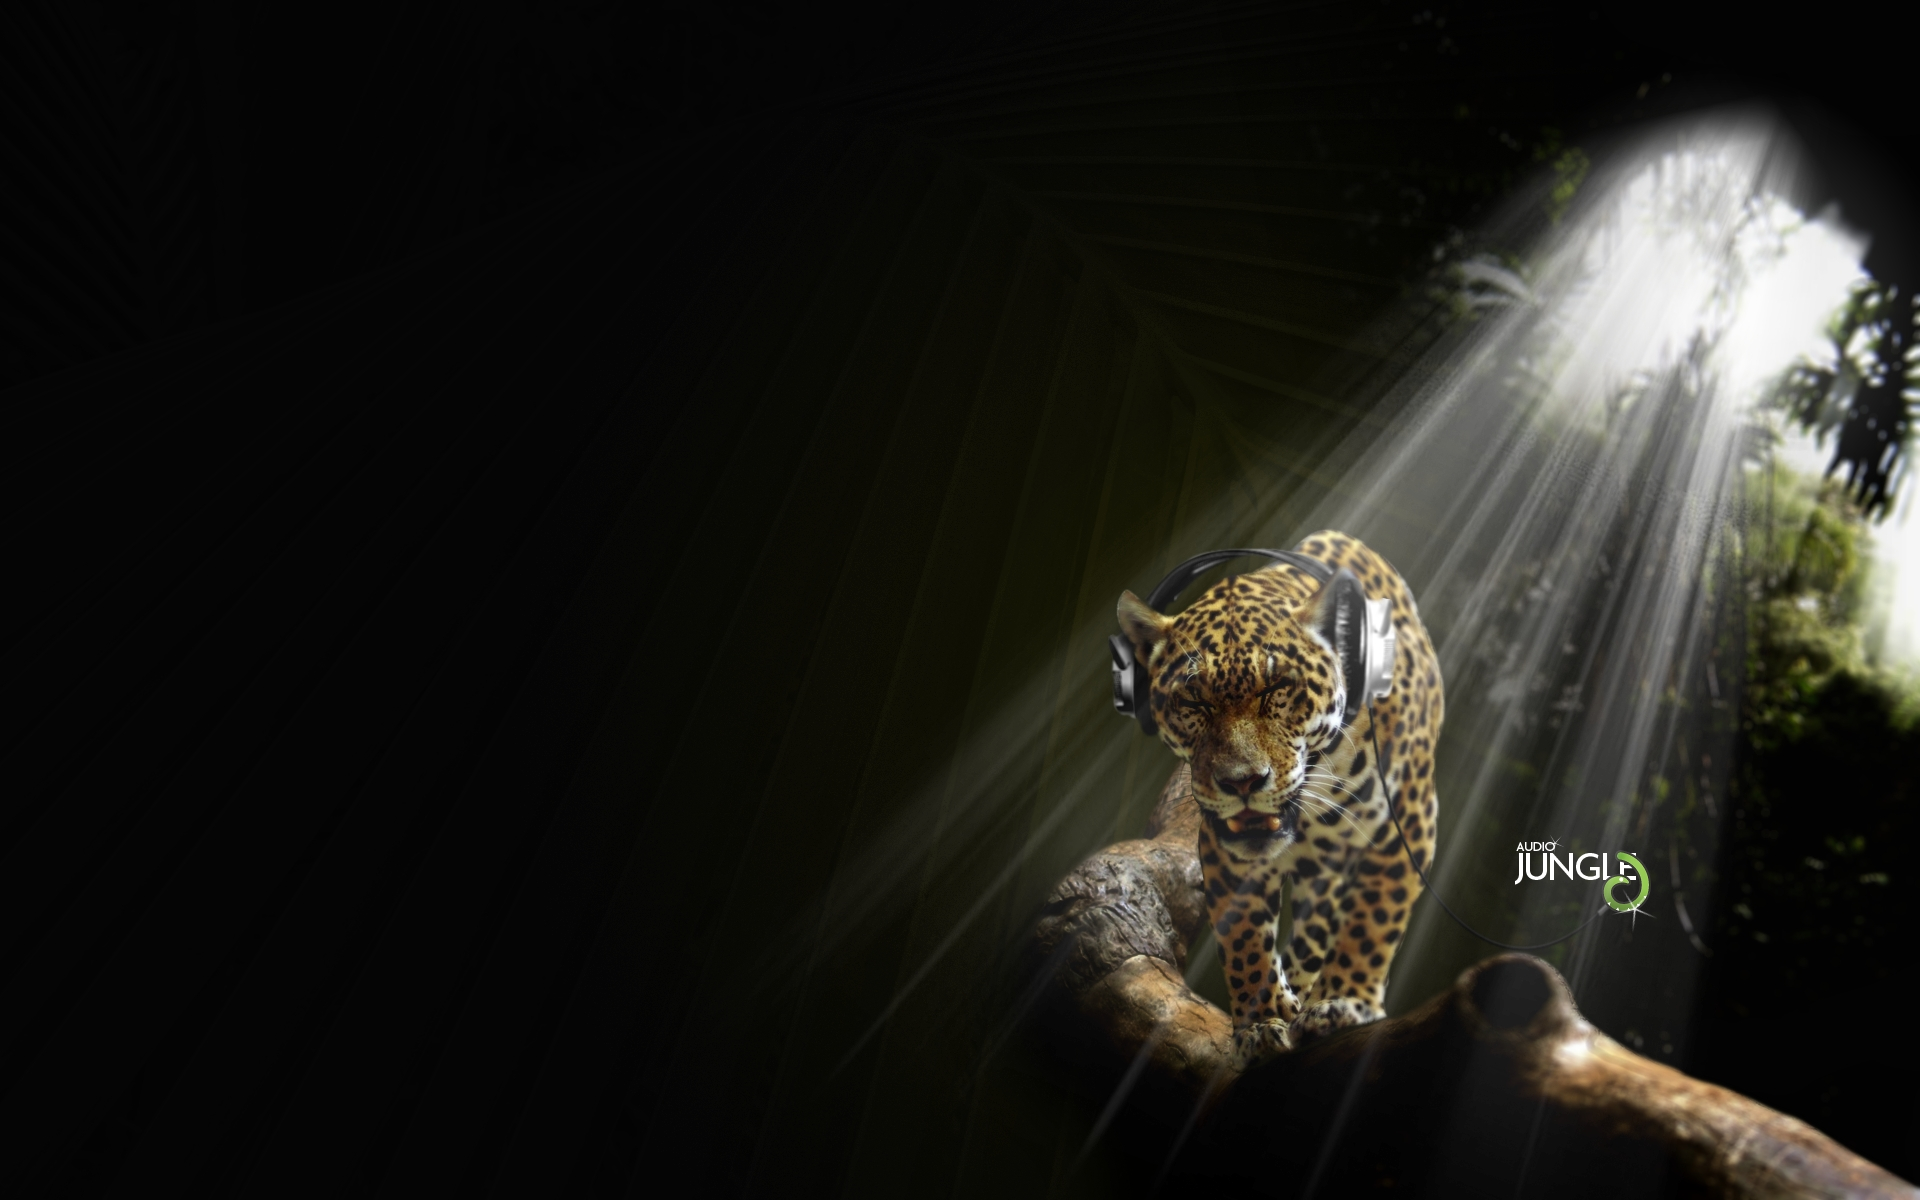 Leopard and music wallpapers | Leopard and music stock photos